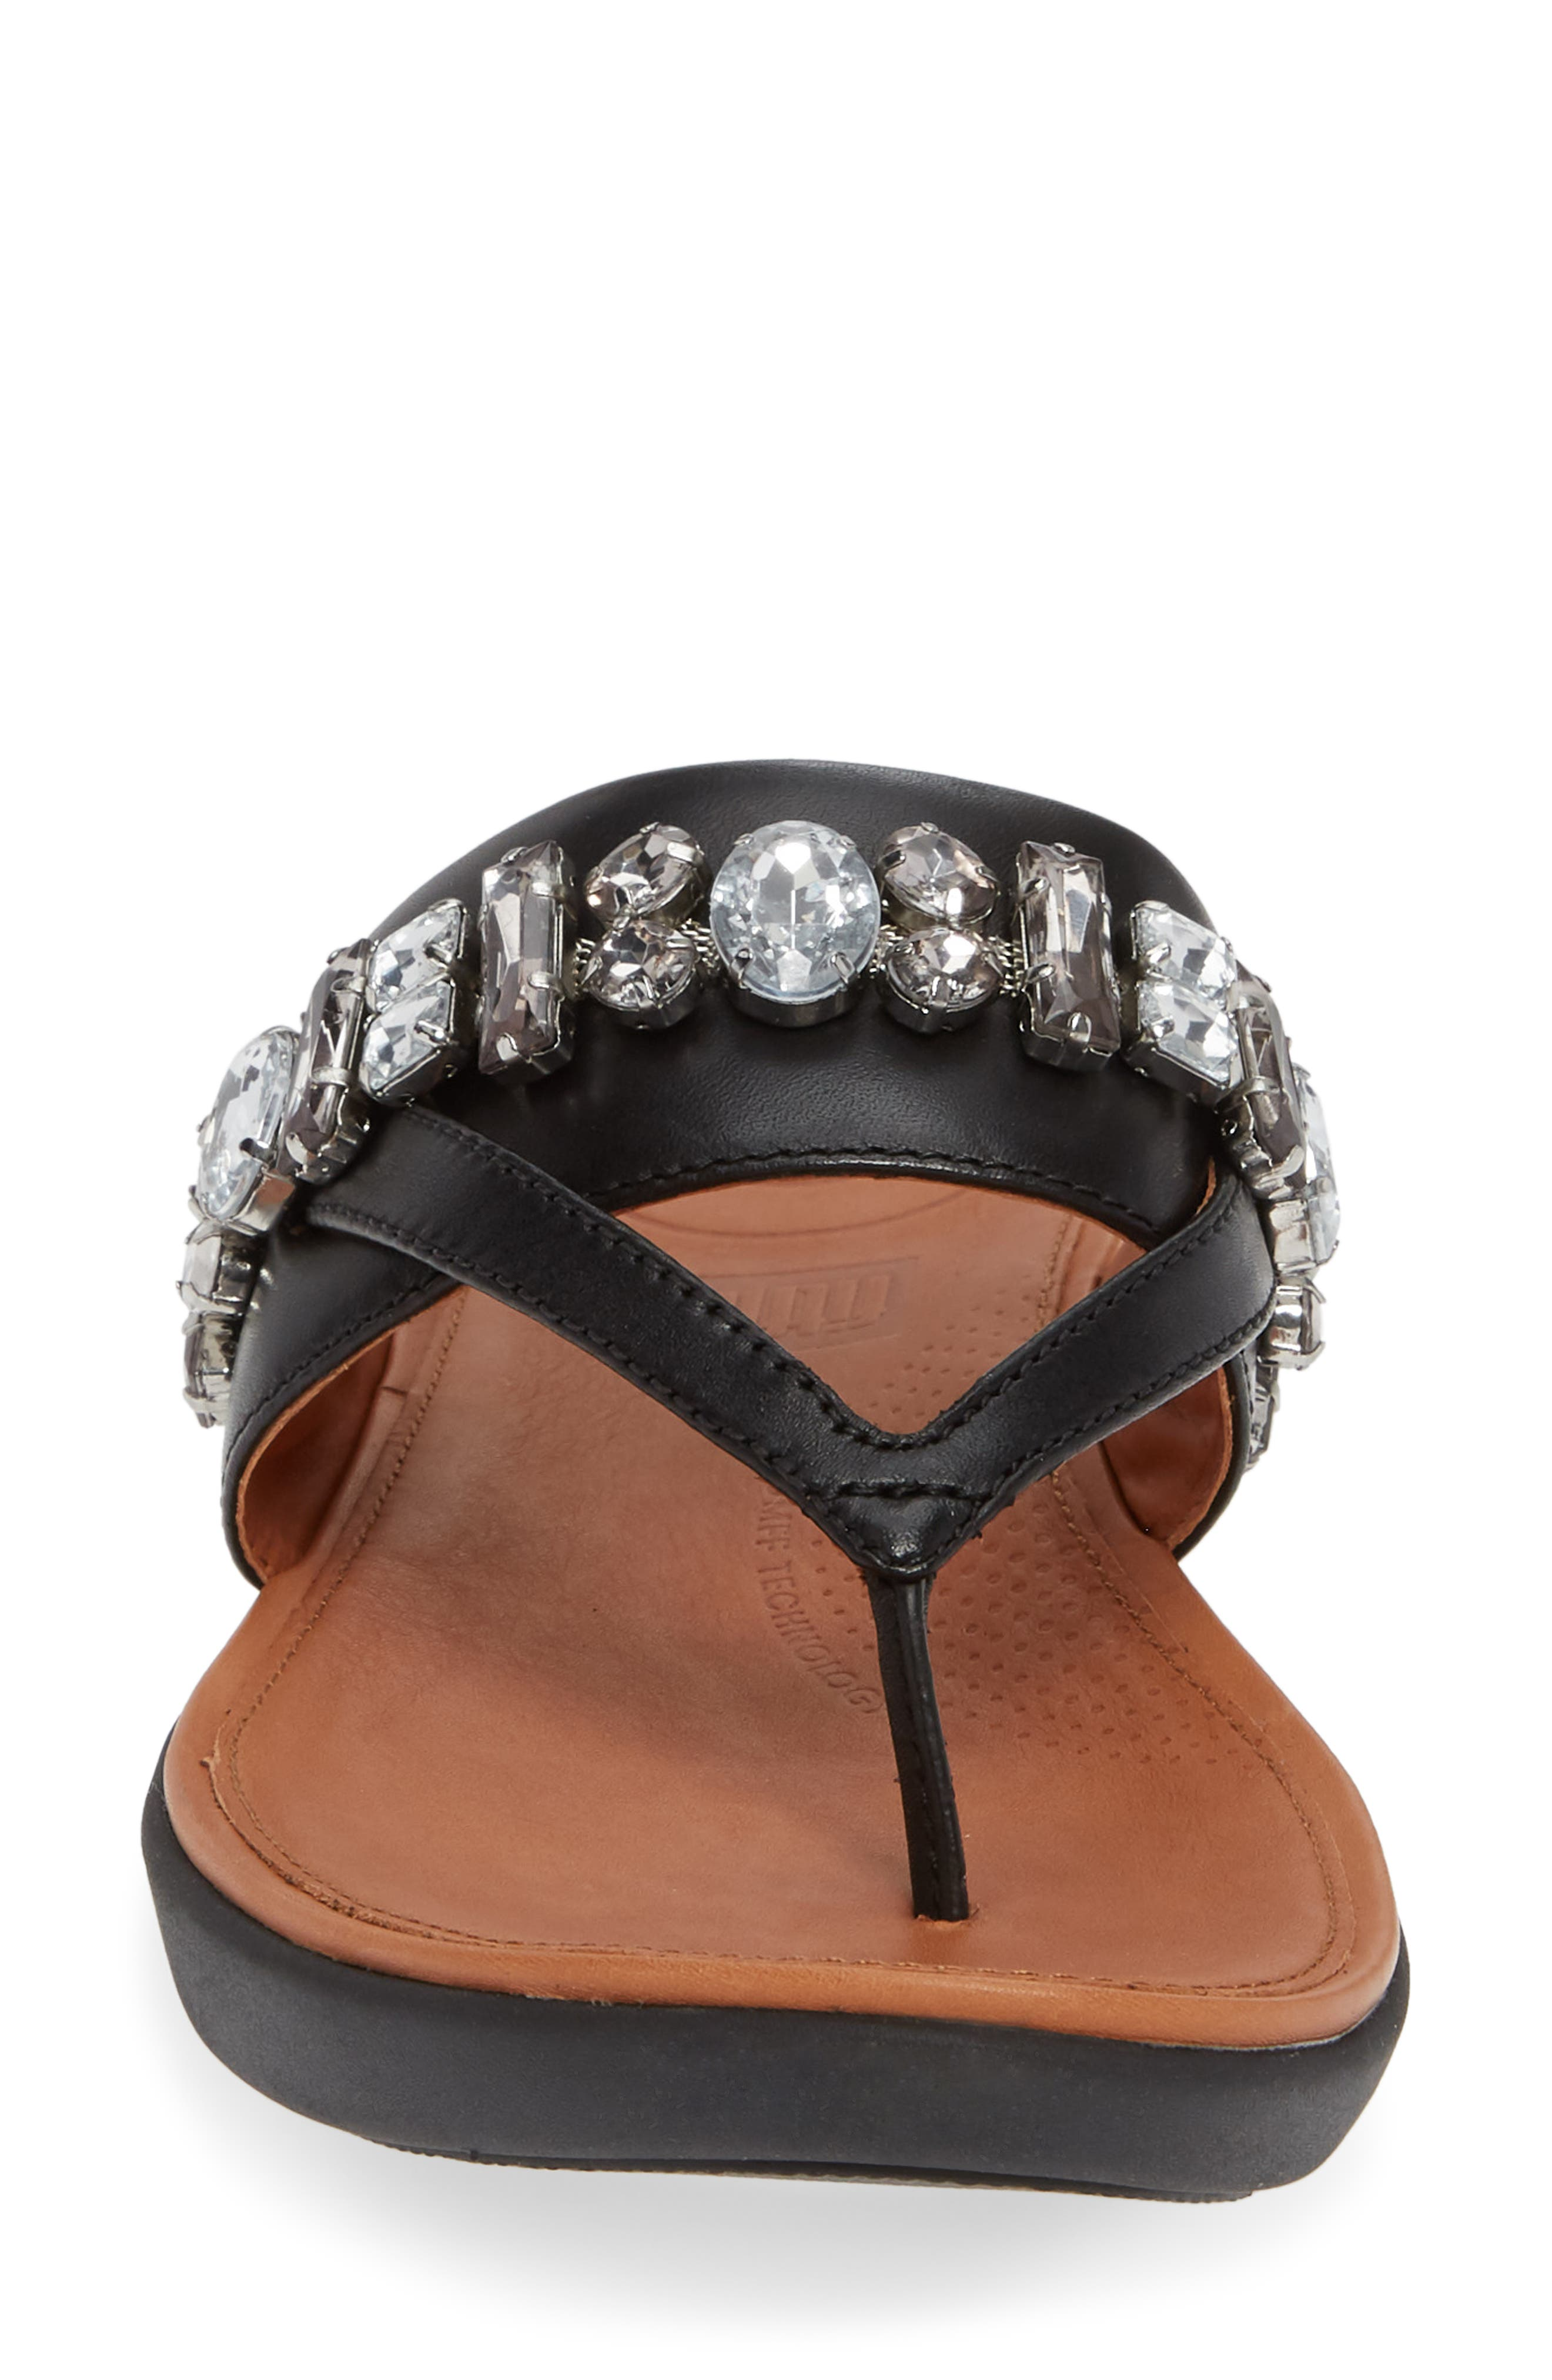 Delta Embellished Slide Sandal,                             Alternate thumbnail 4, color,                             001